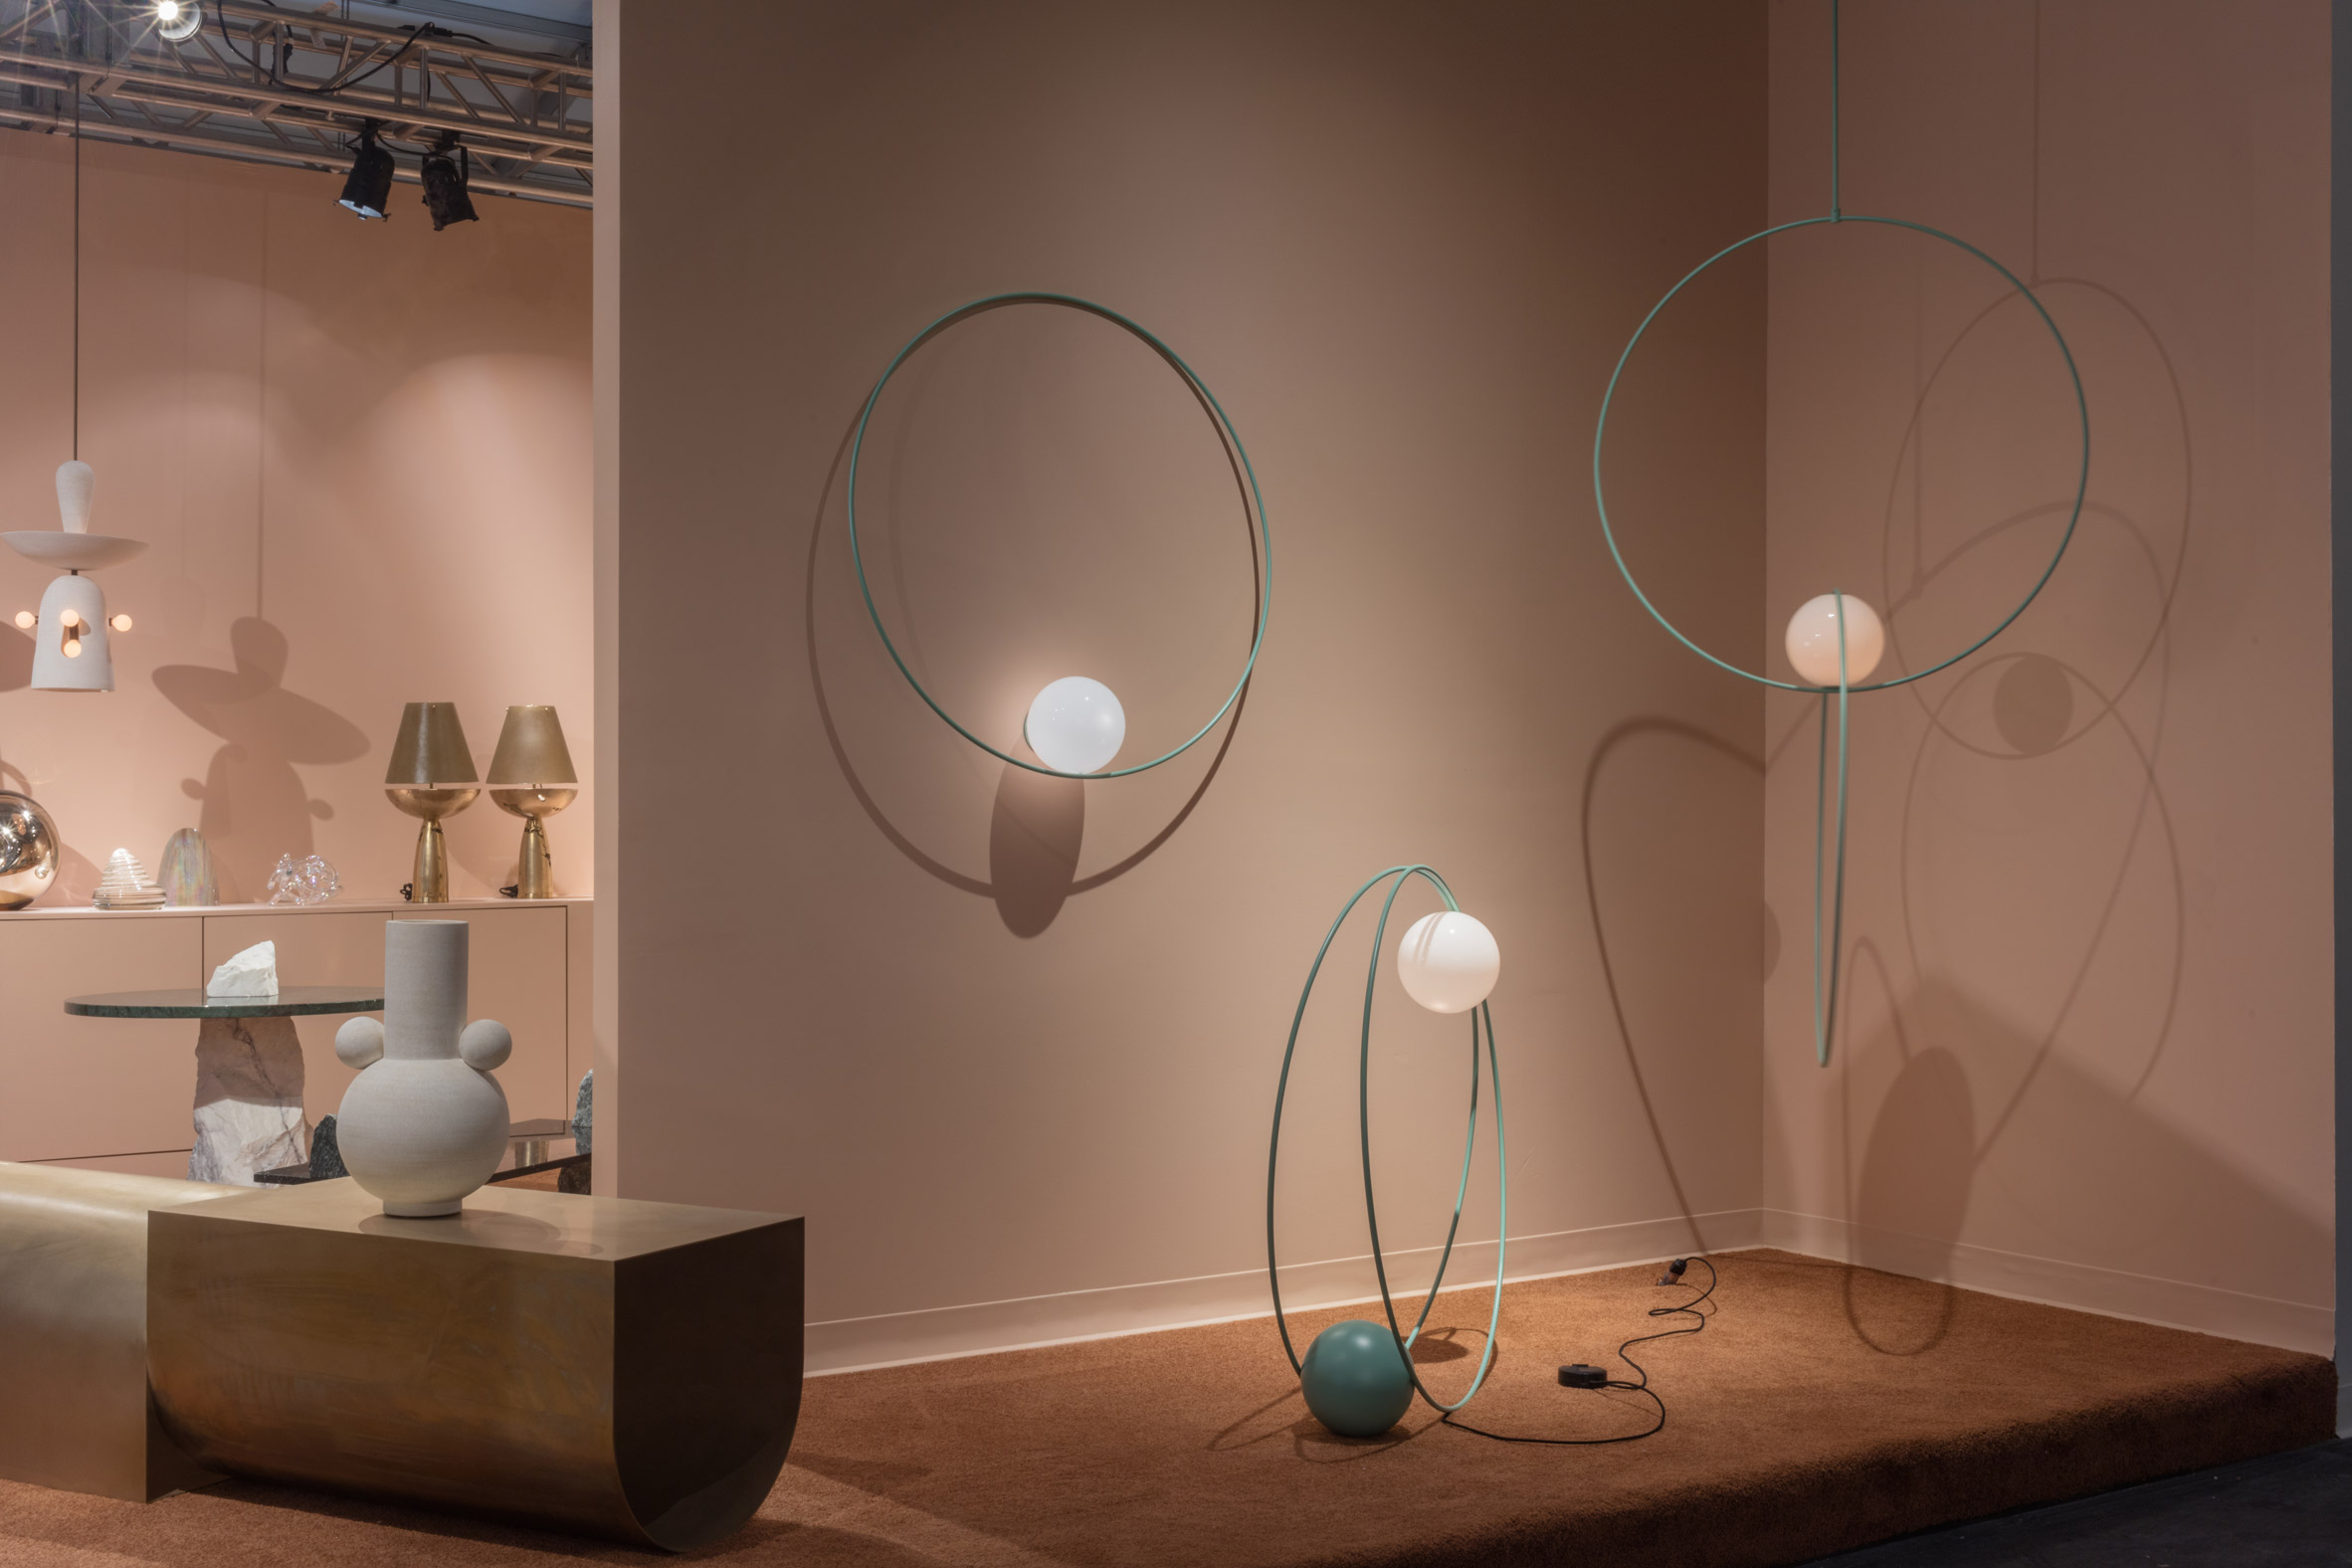 bespoke-loop-collection-by-michael-anastassiades-at-future-perfect-miami-design-lighting-_dezeen_2364_col_8